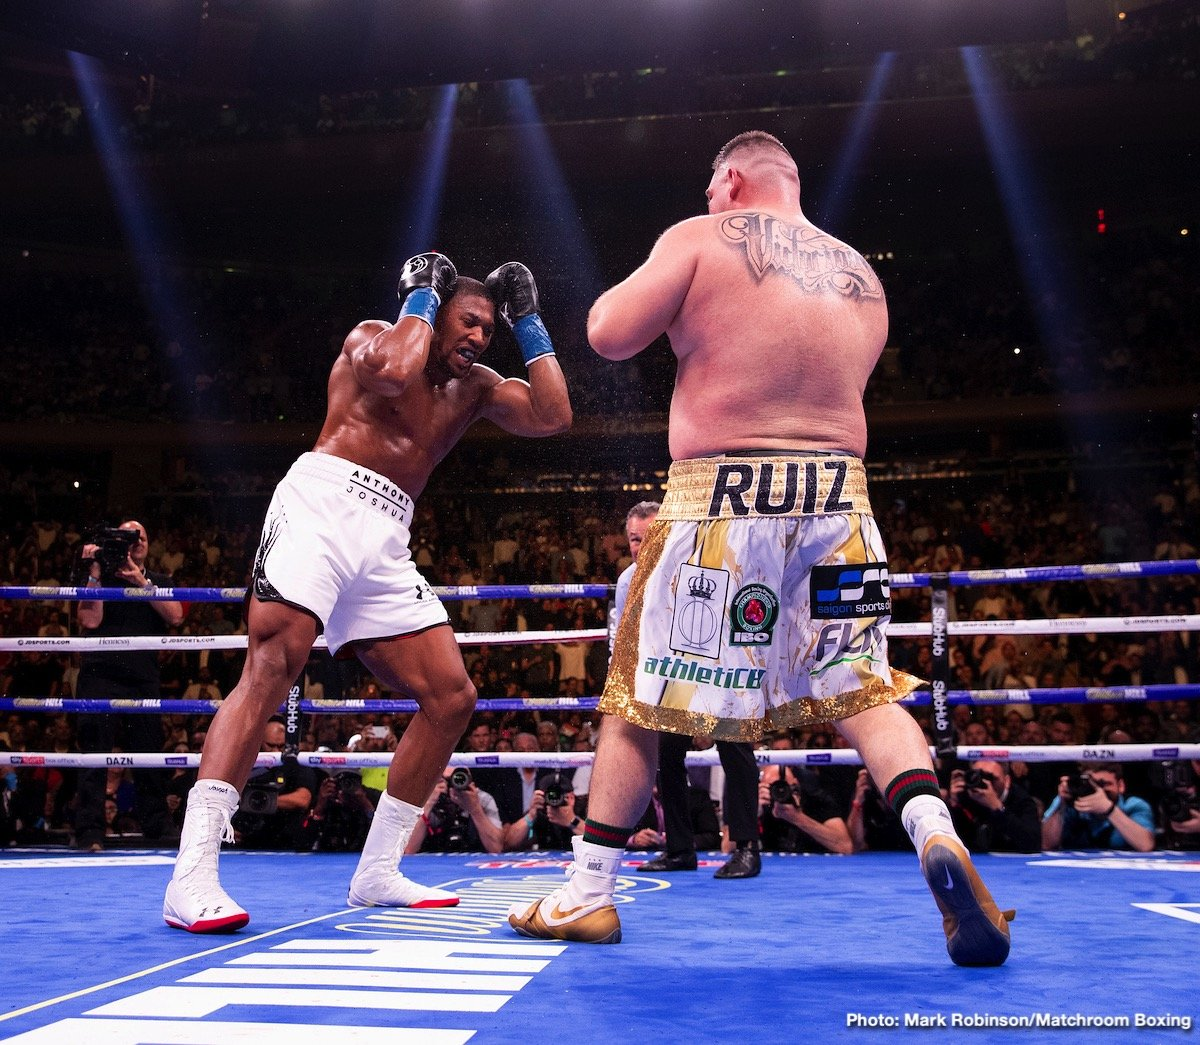 Andy Mannah andre ward dissects joshua vs. ruiz rematch ⋆ boxing news 24